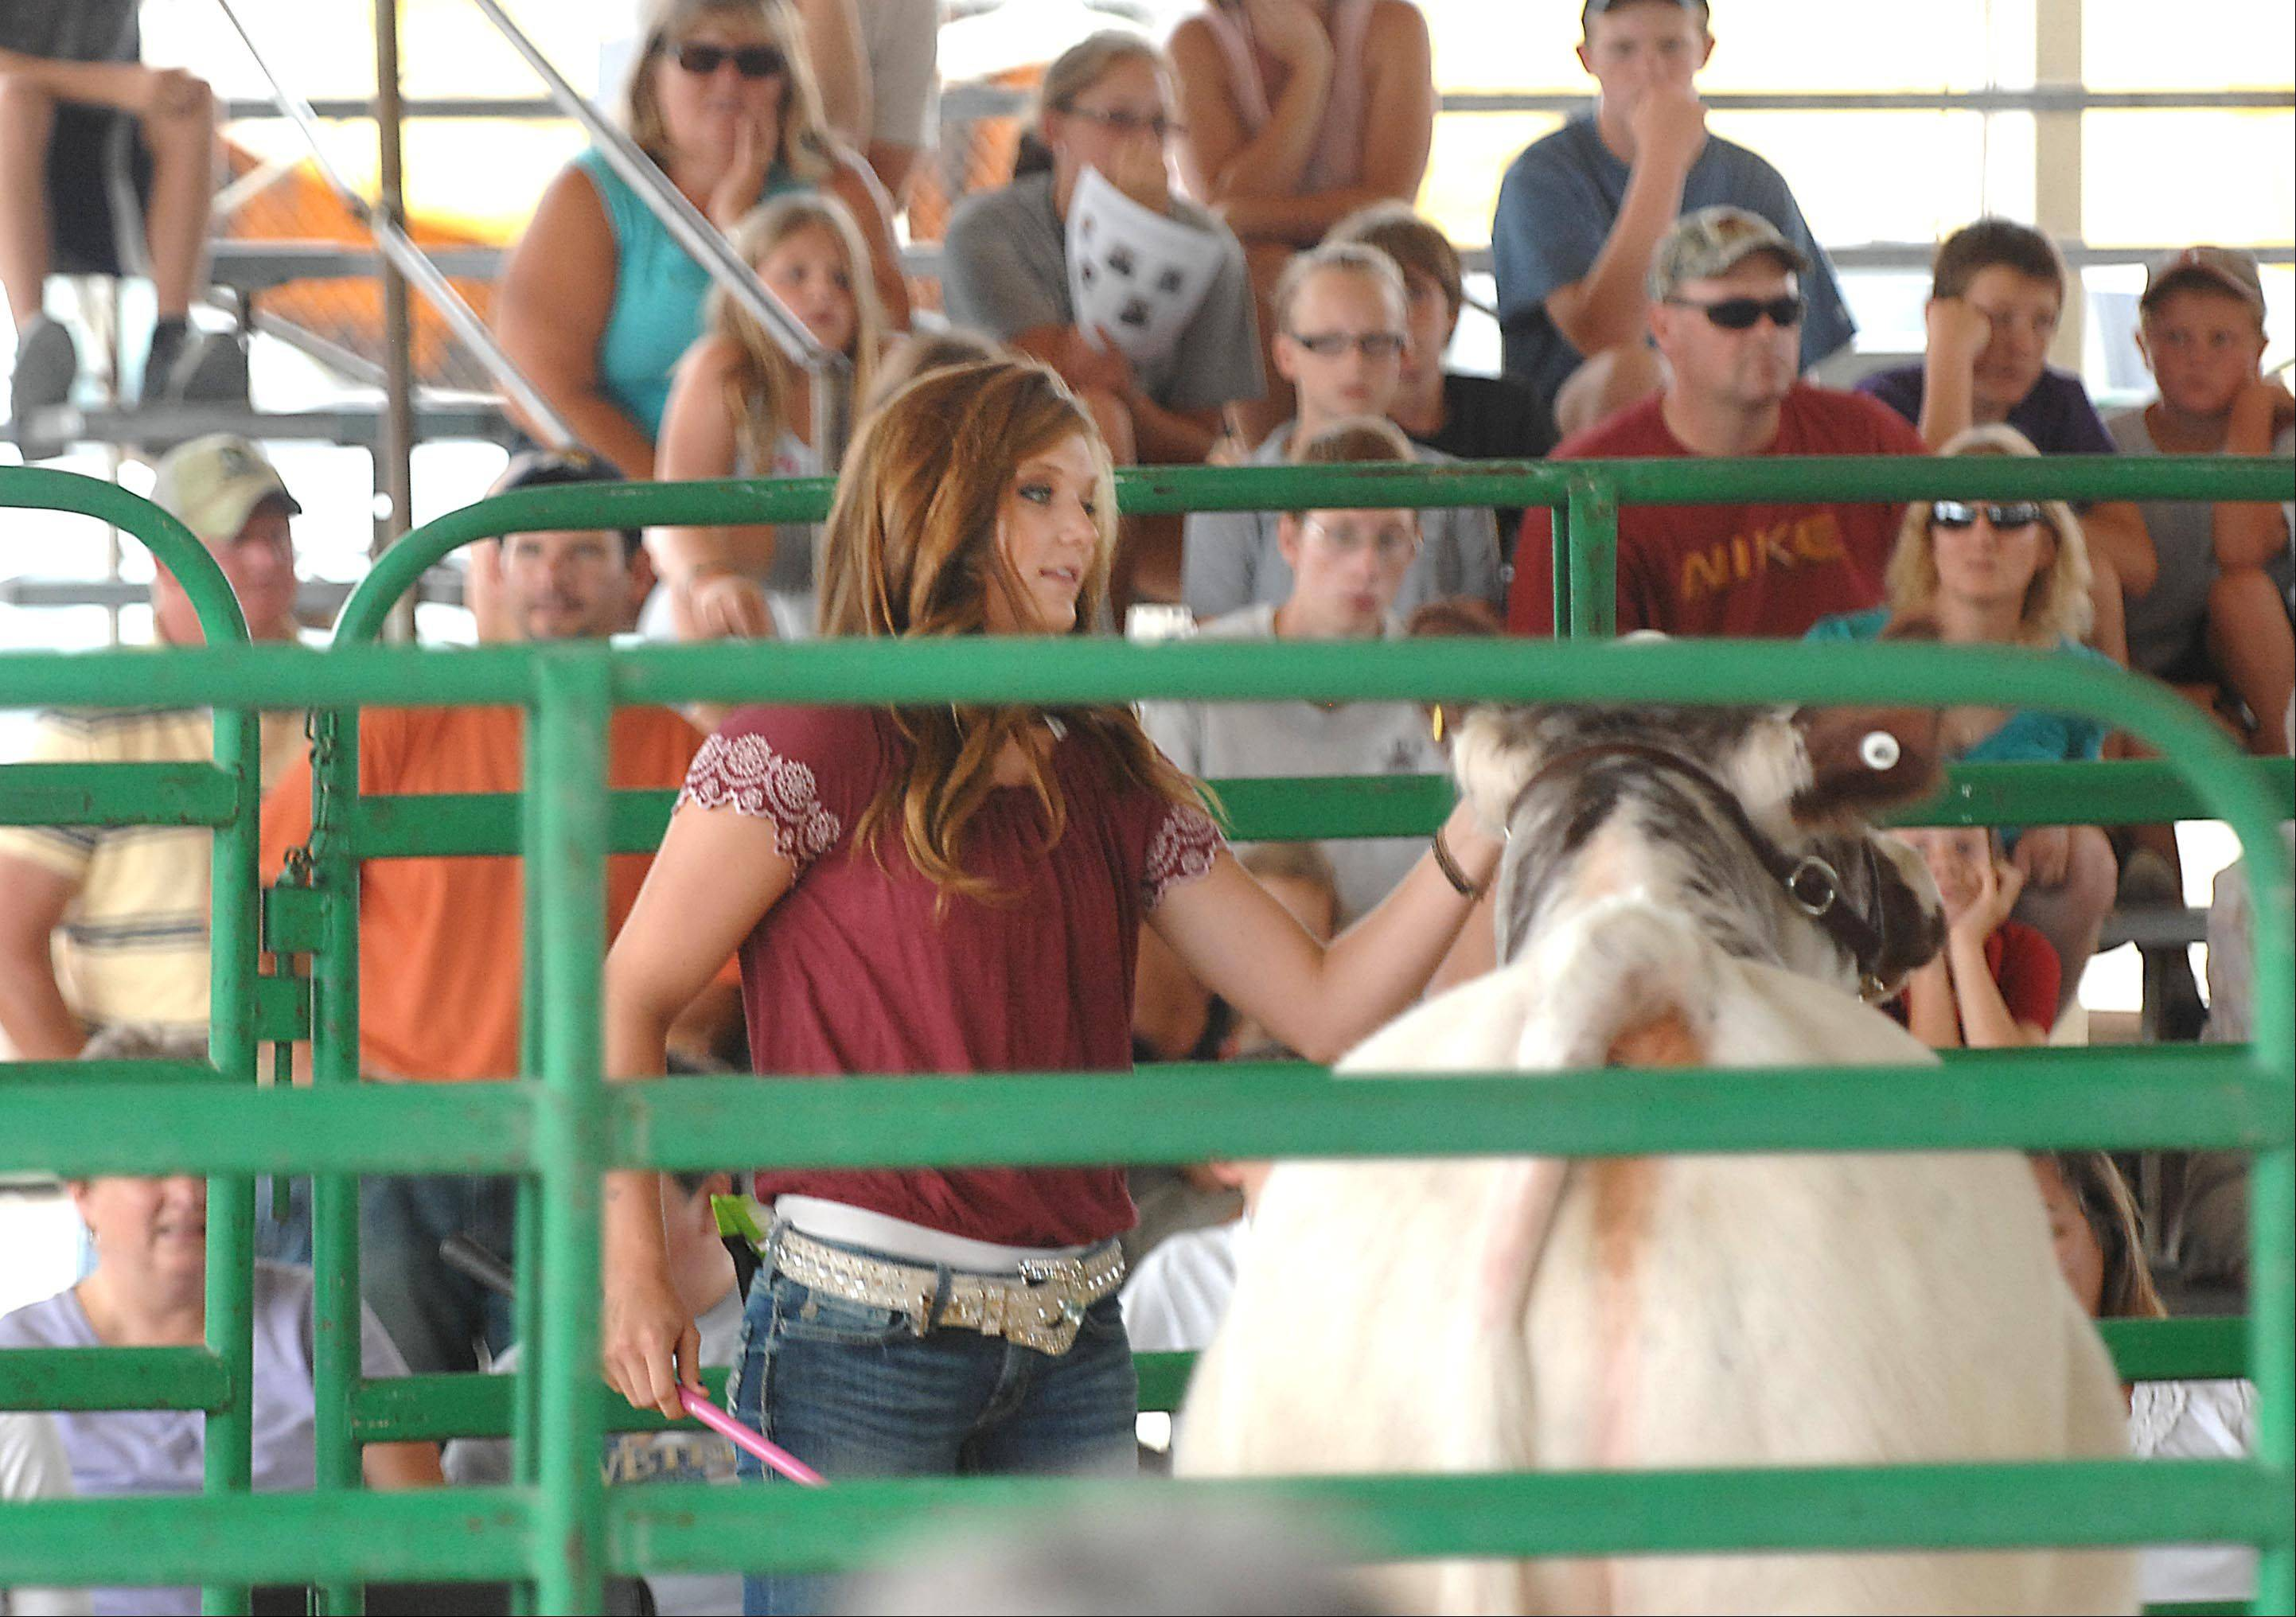 Danielle Engel of Marengo and the Burlington Ag 4-H Club, shows her Reserve Grand Champion Steer at the 2012 Kane County Fair 4-H Blue Ribbon Sale Sunday in St. Charles.